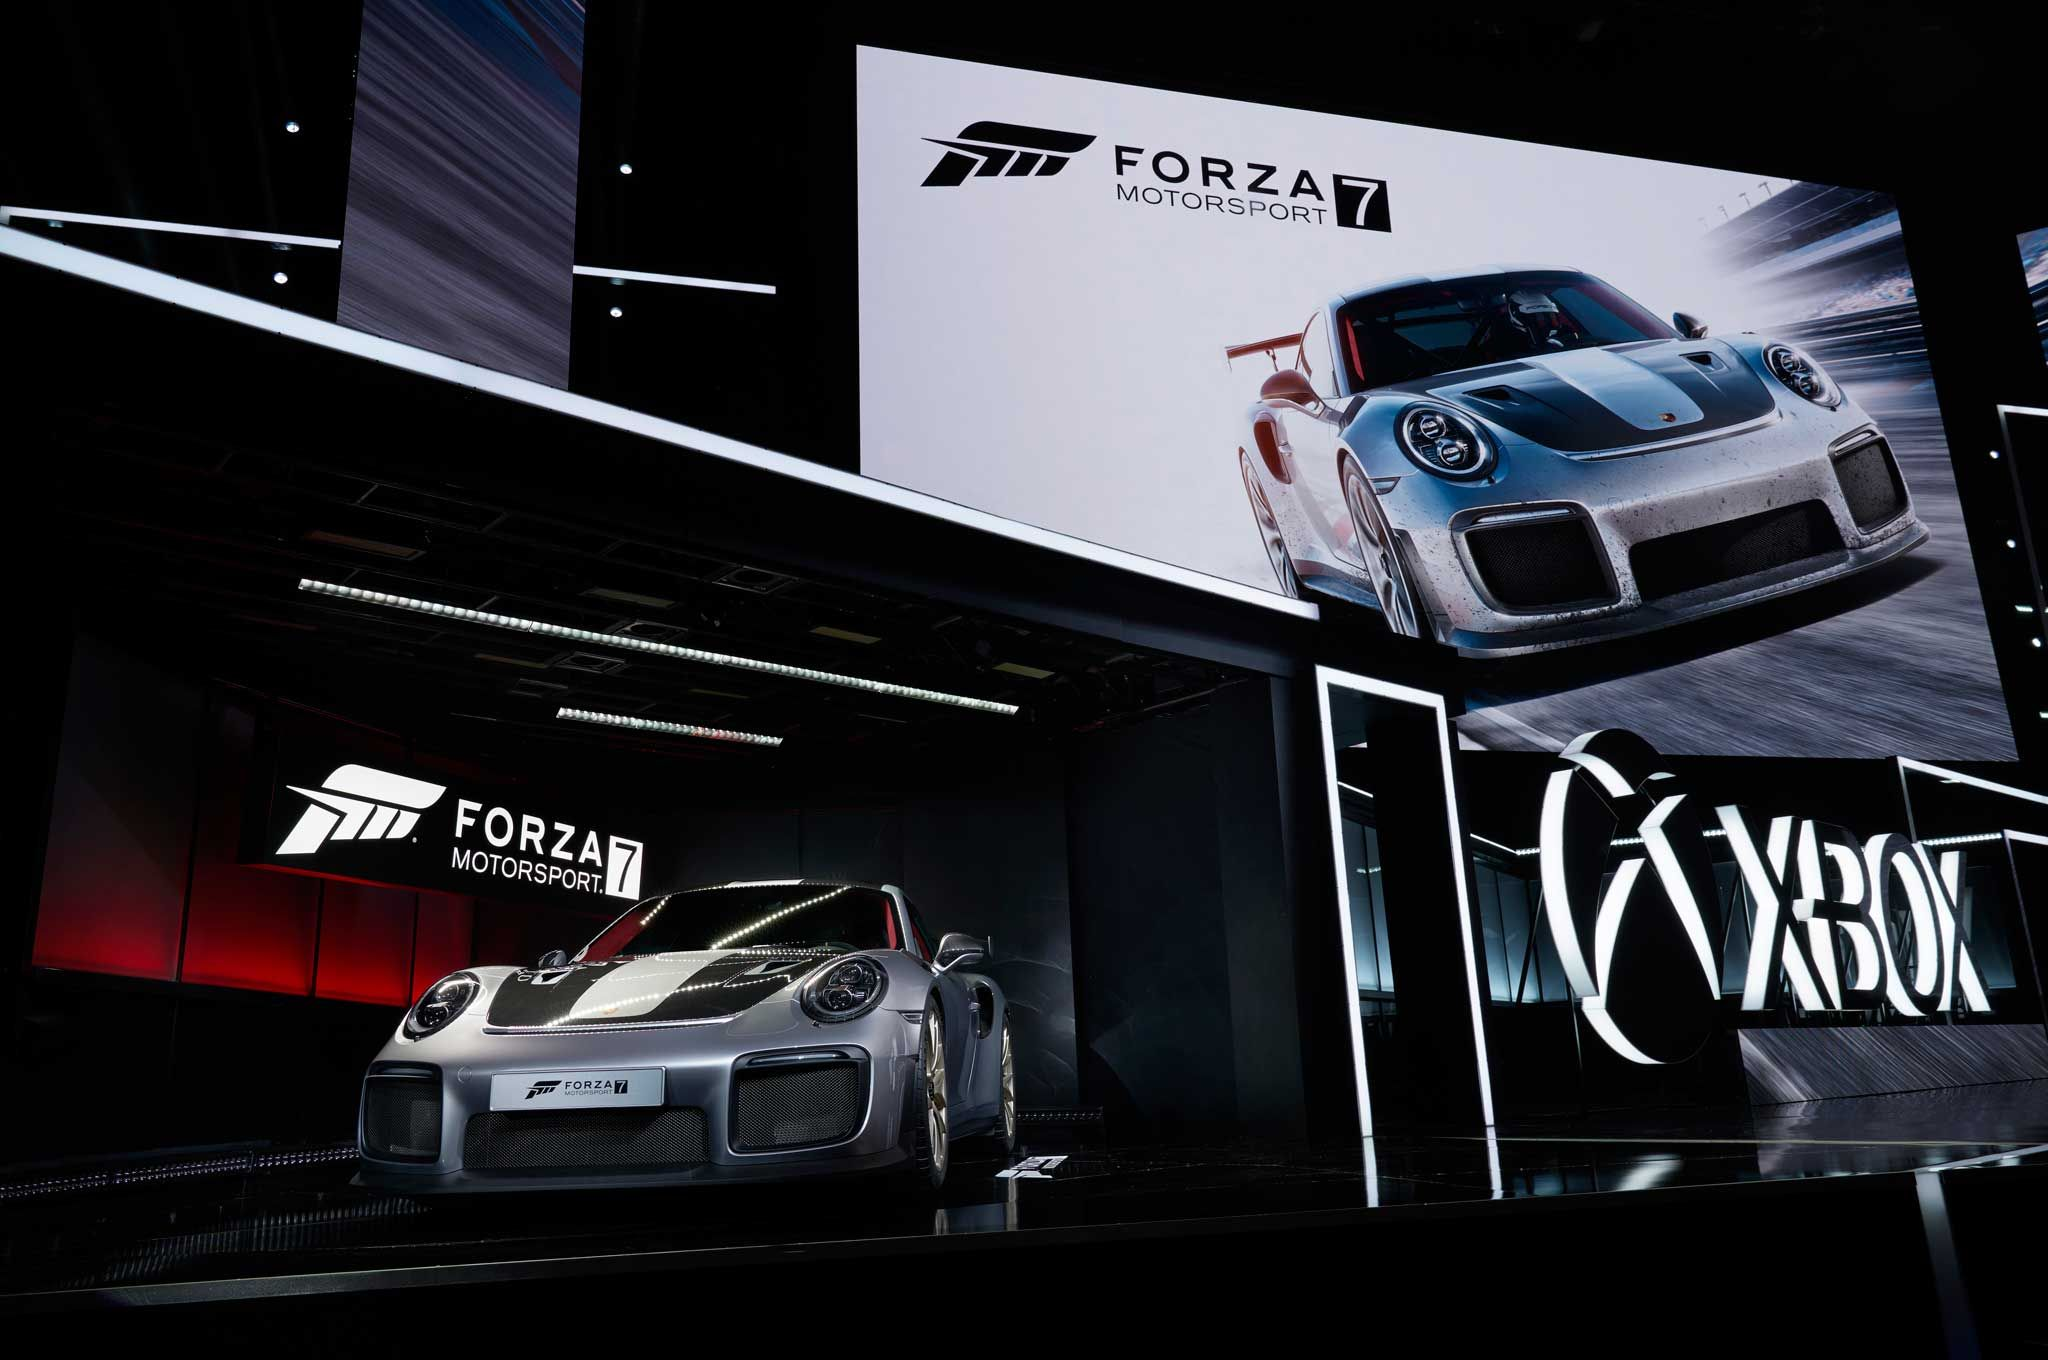 http://www.superstreetonline.com/event-coverage/1706-e3-2017-forza-motorsport-7-first-drive/